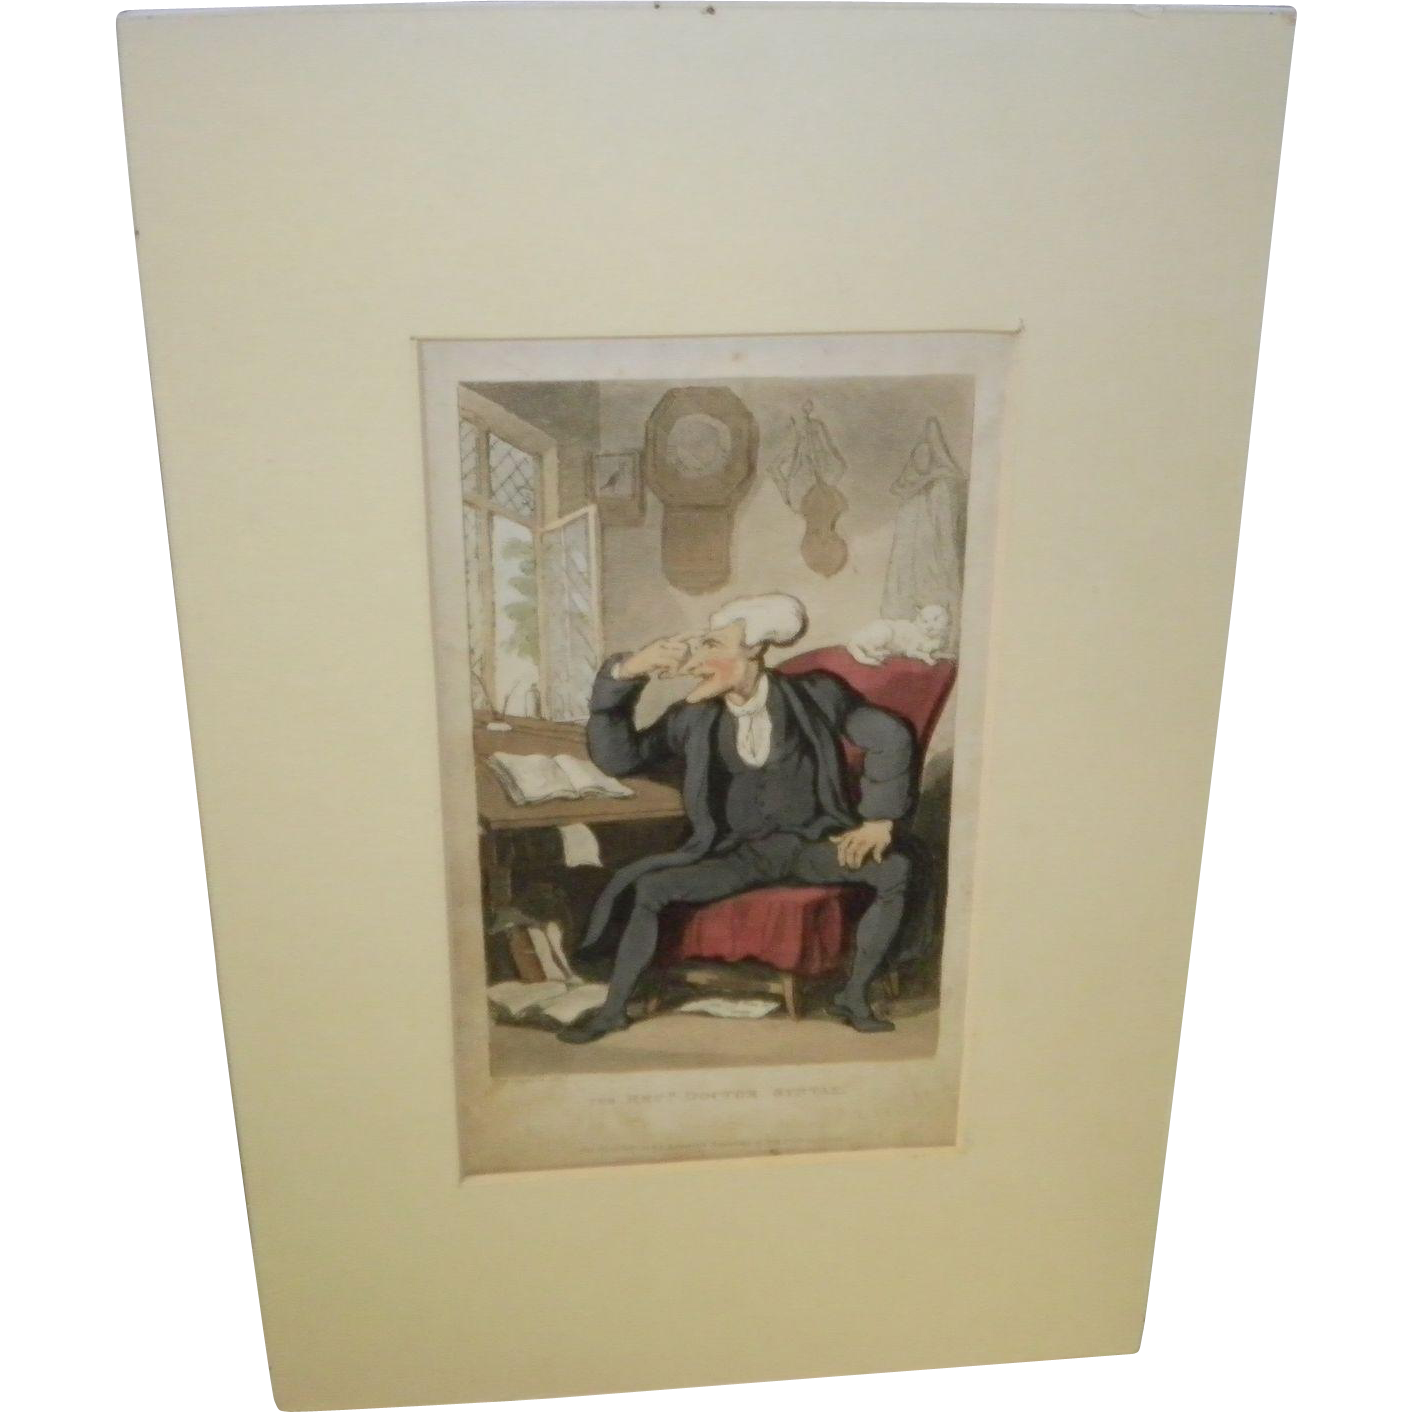 The Revd Doctor Syntax By Thomas Rowlandson Dated 1821